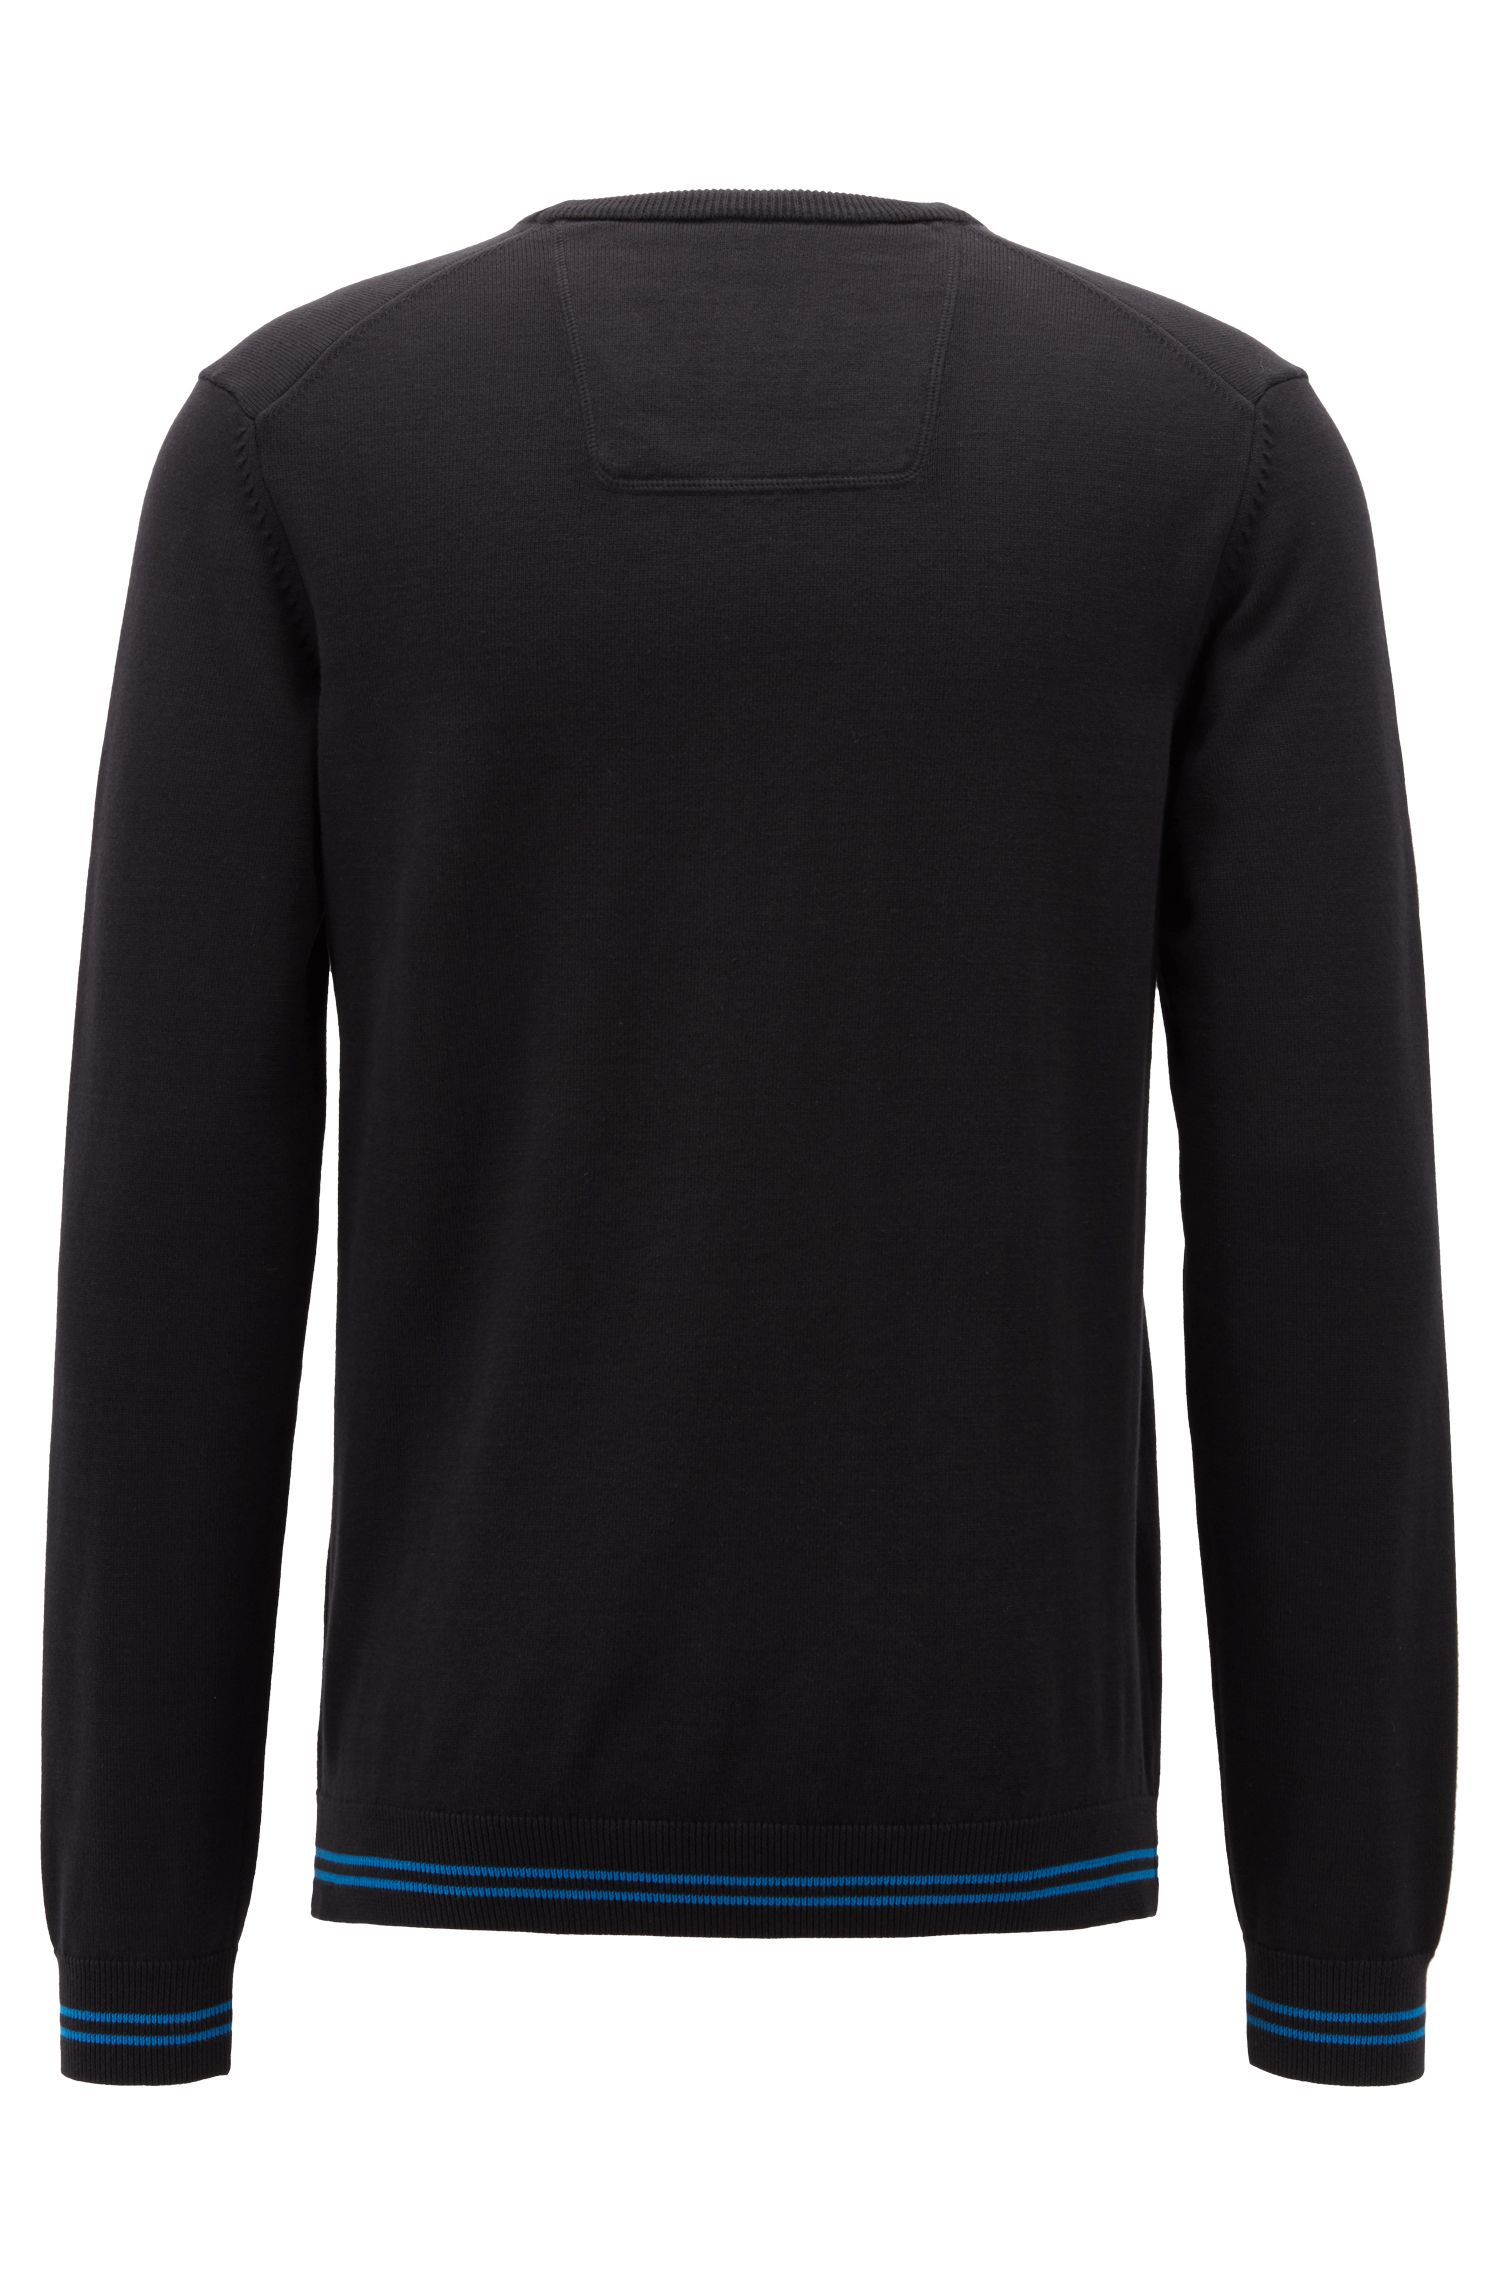 V-neck sweater in a cotton blend with tipping stripes, Black